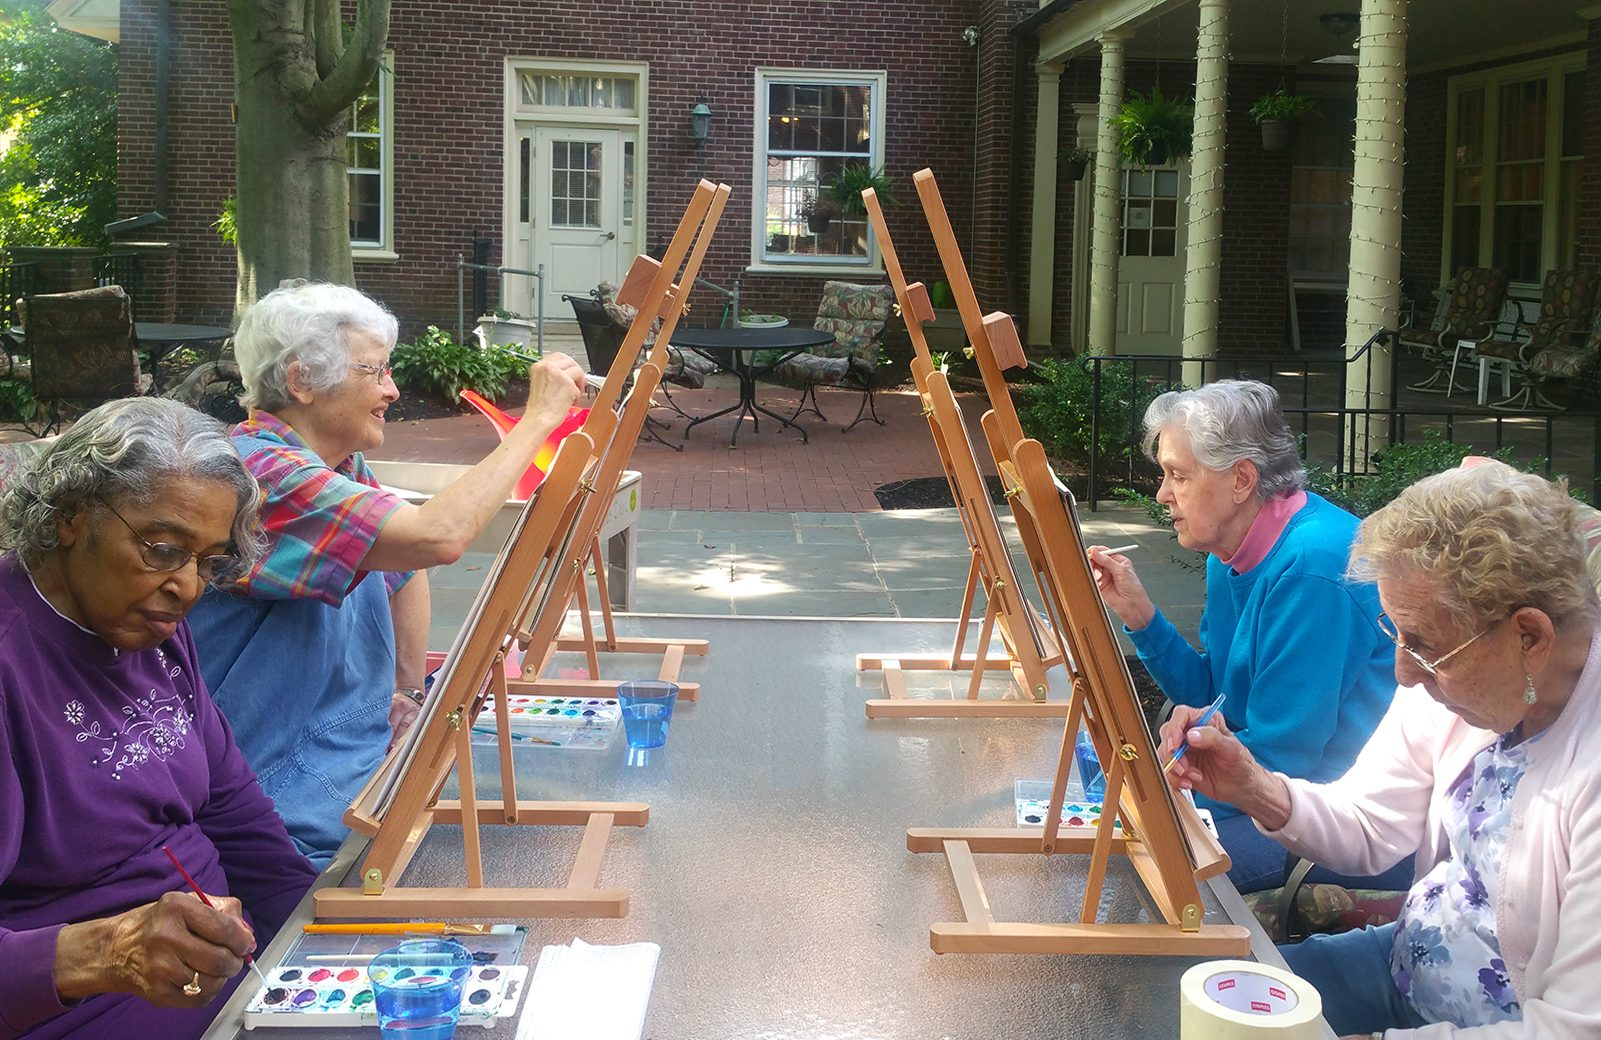 Residents enjoy painting on the patio.